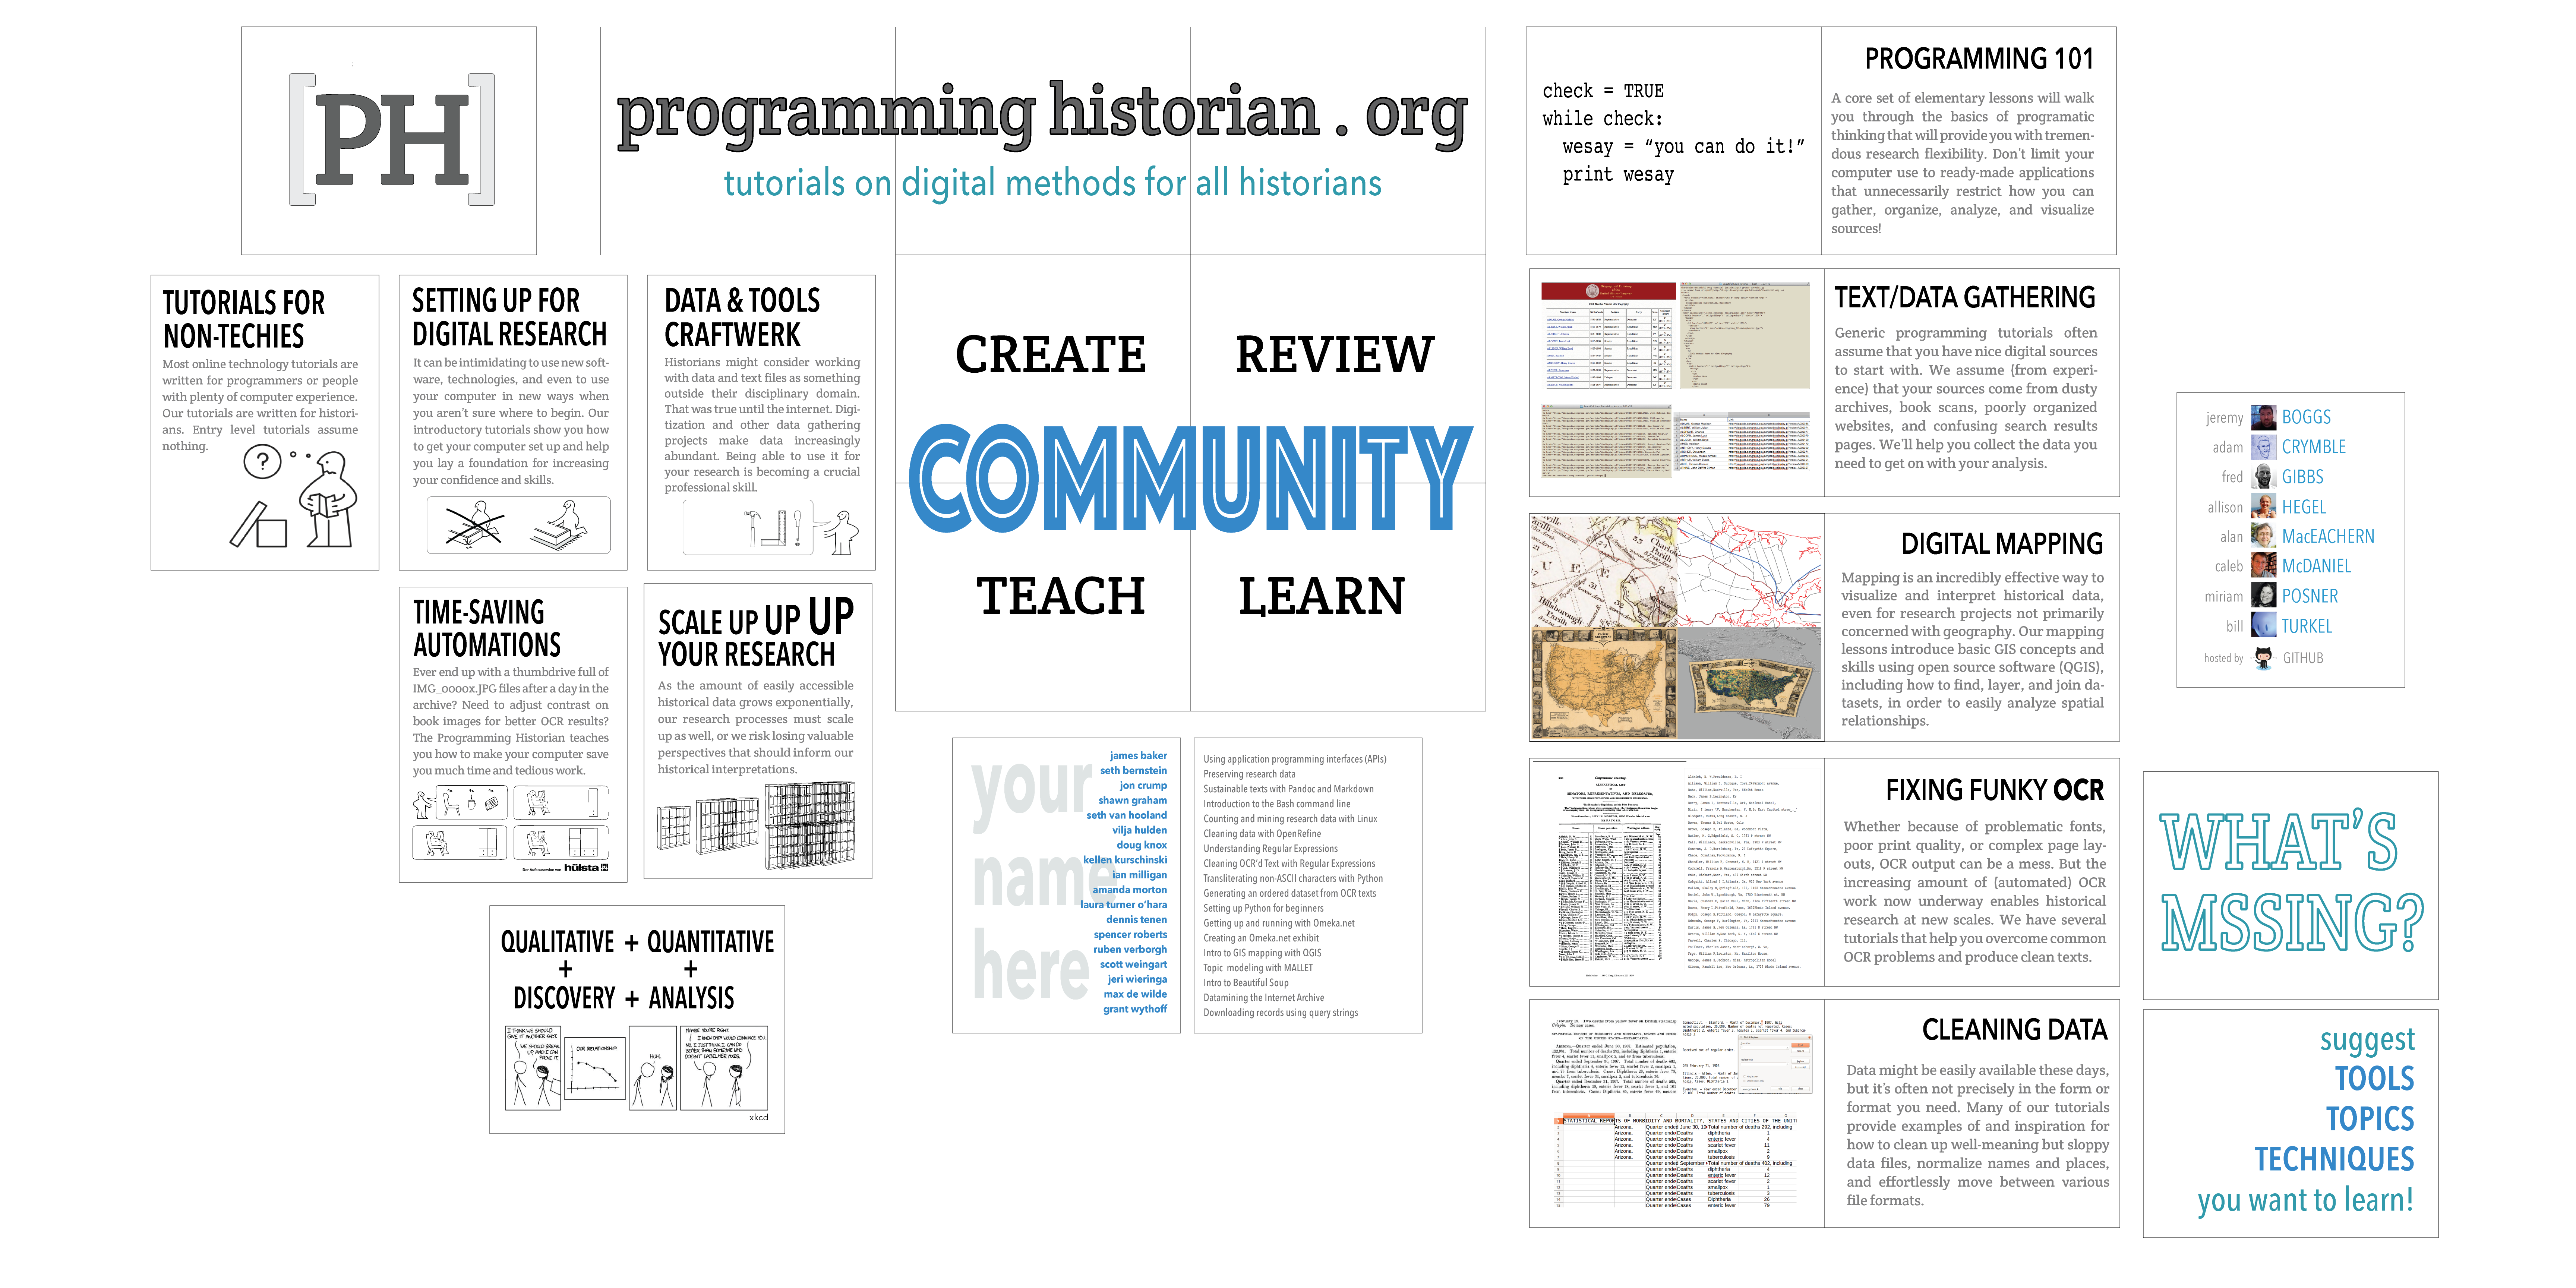 A new perspective on the Programming Historian